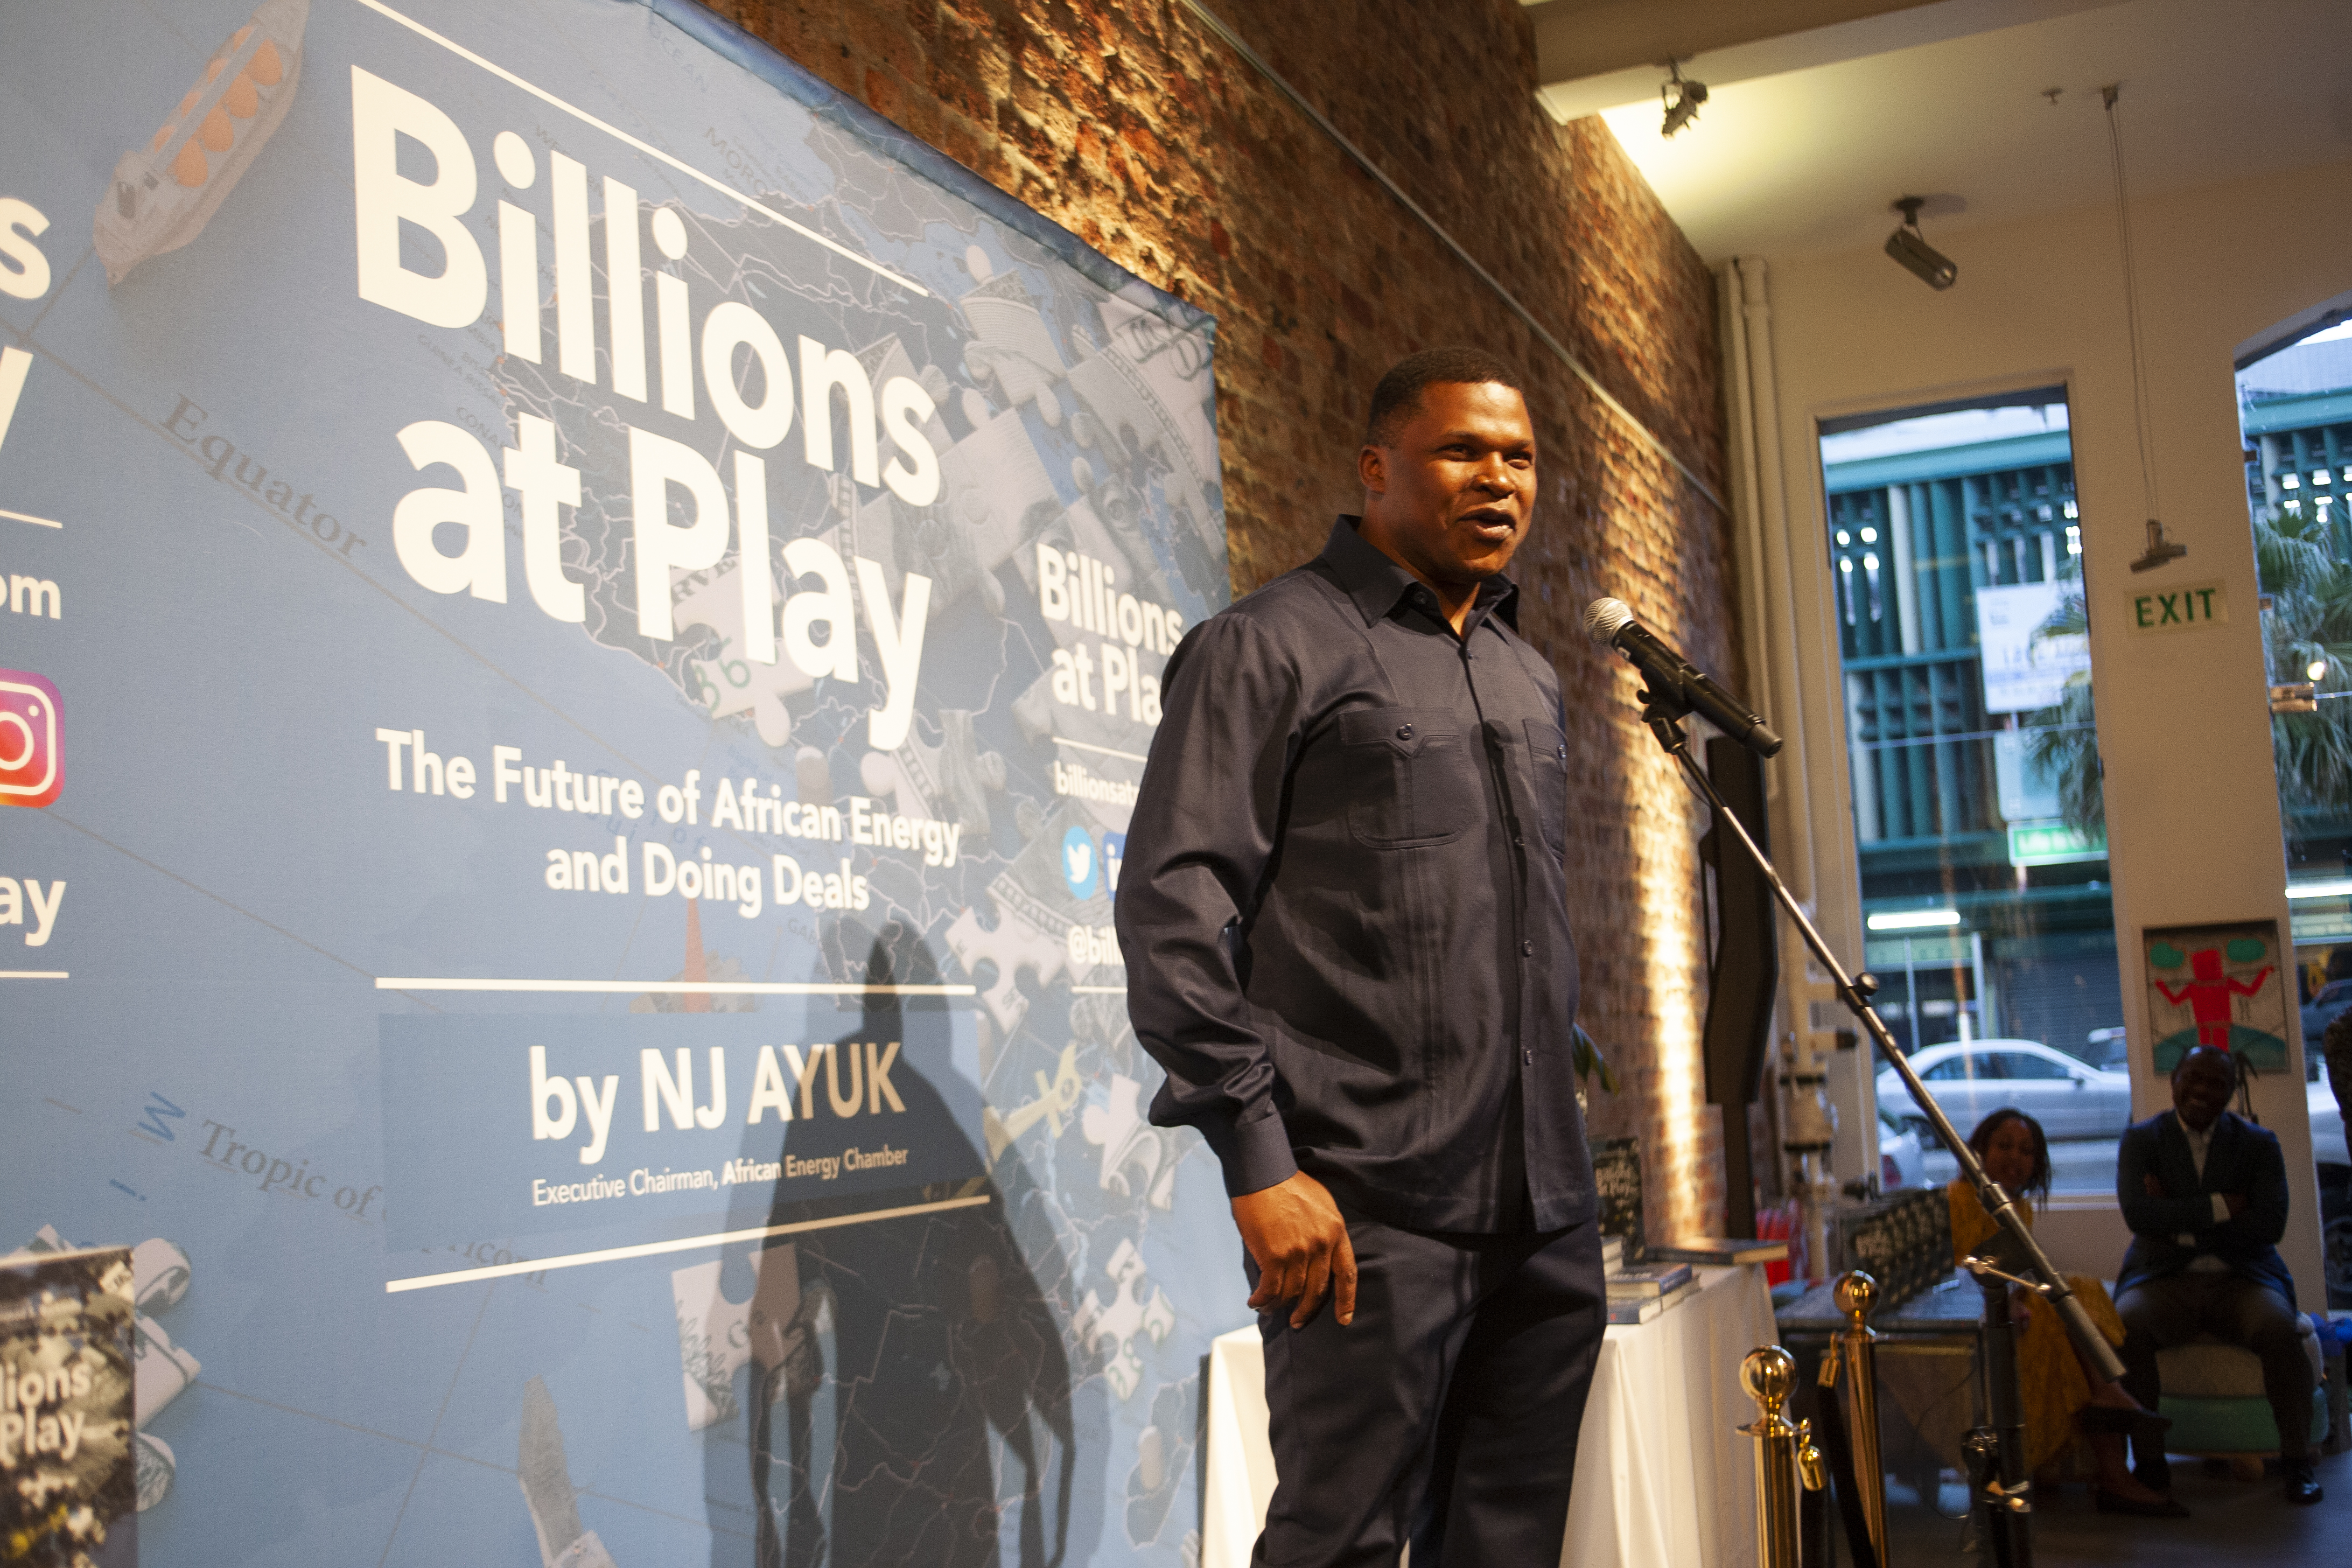 NJ Ayuk speaking at the launch of Billions At Play in South Africa